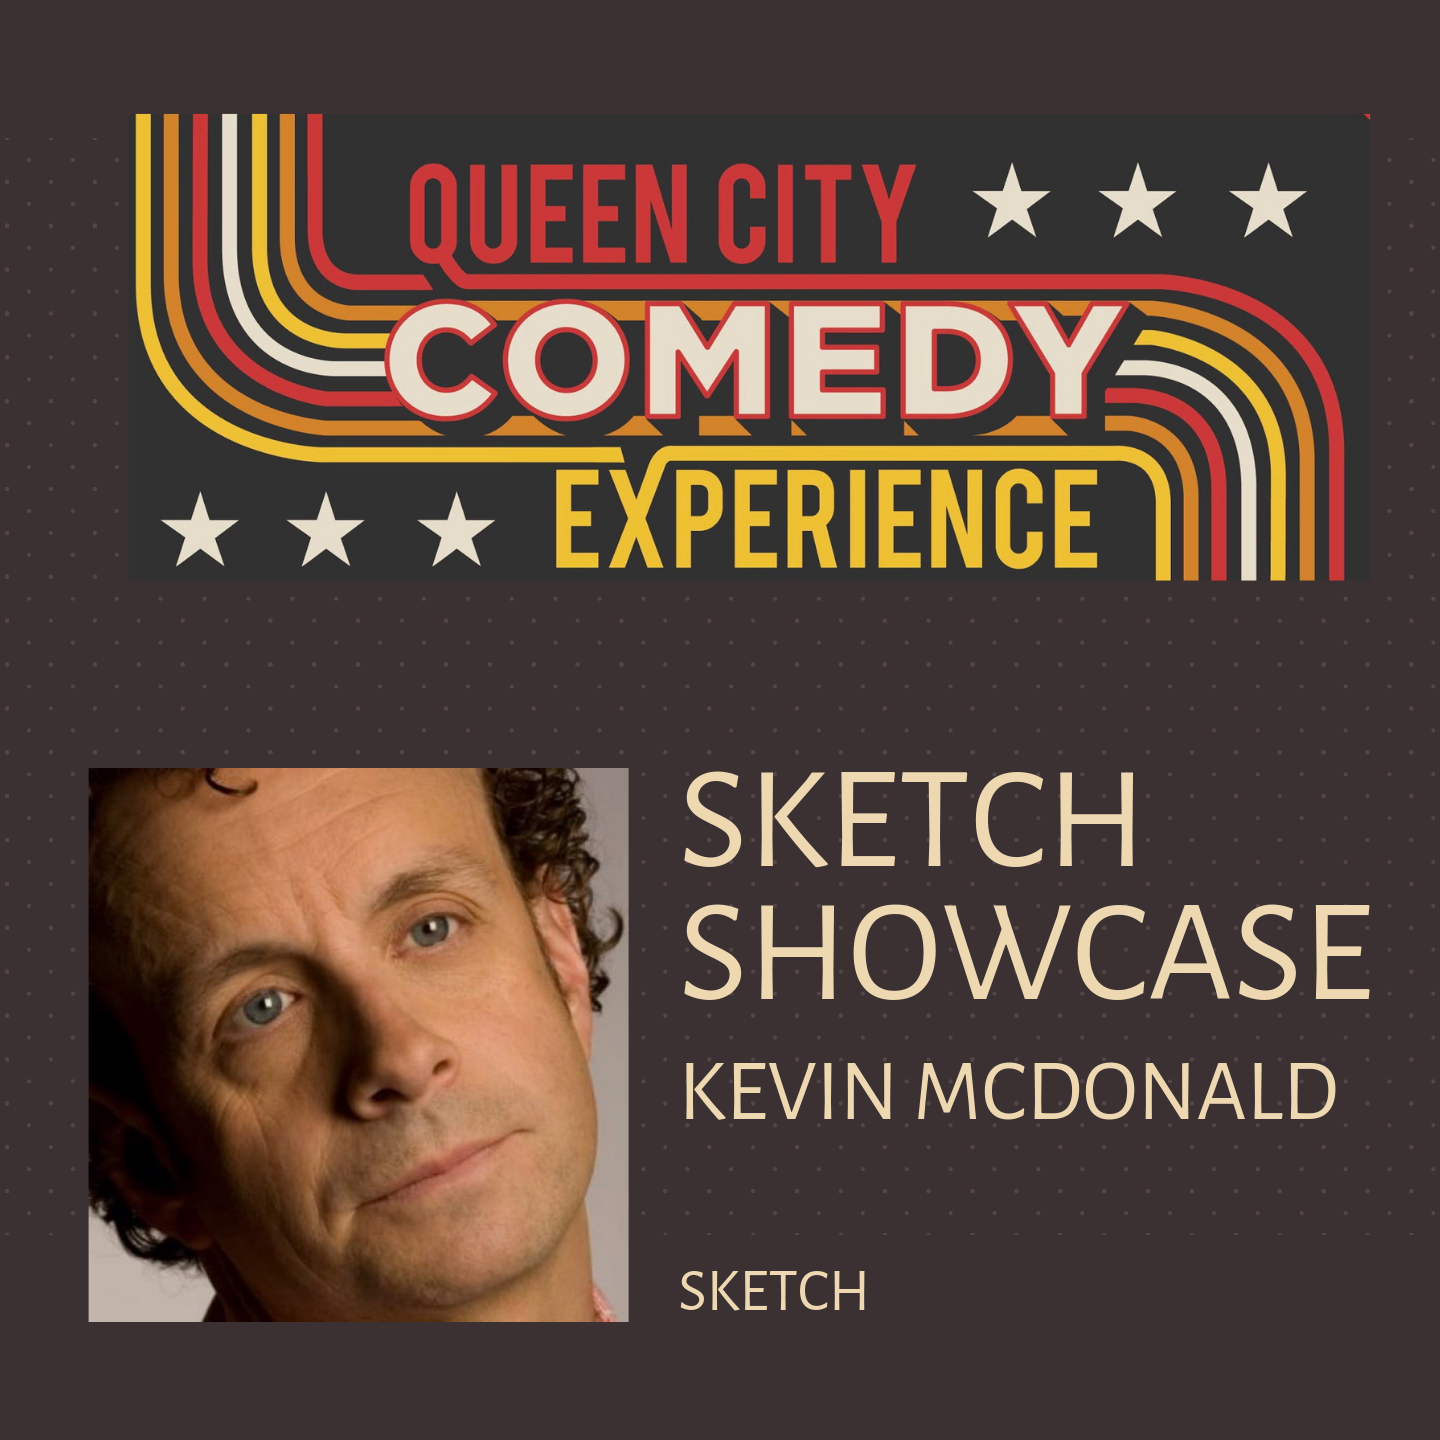 Kevin McDonald Sketch Showcase